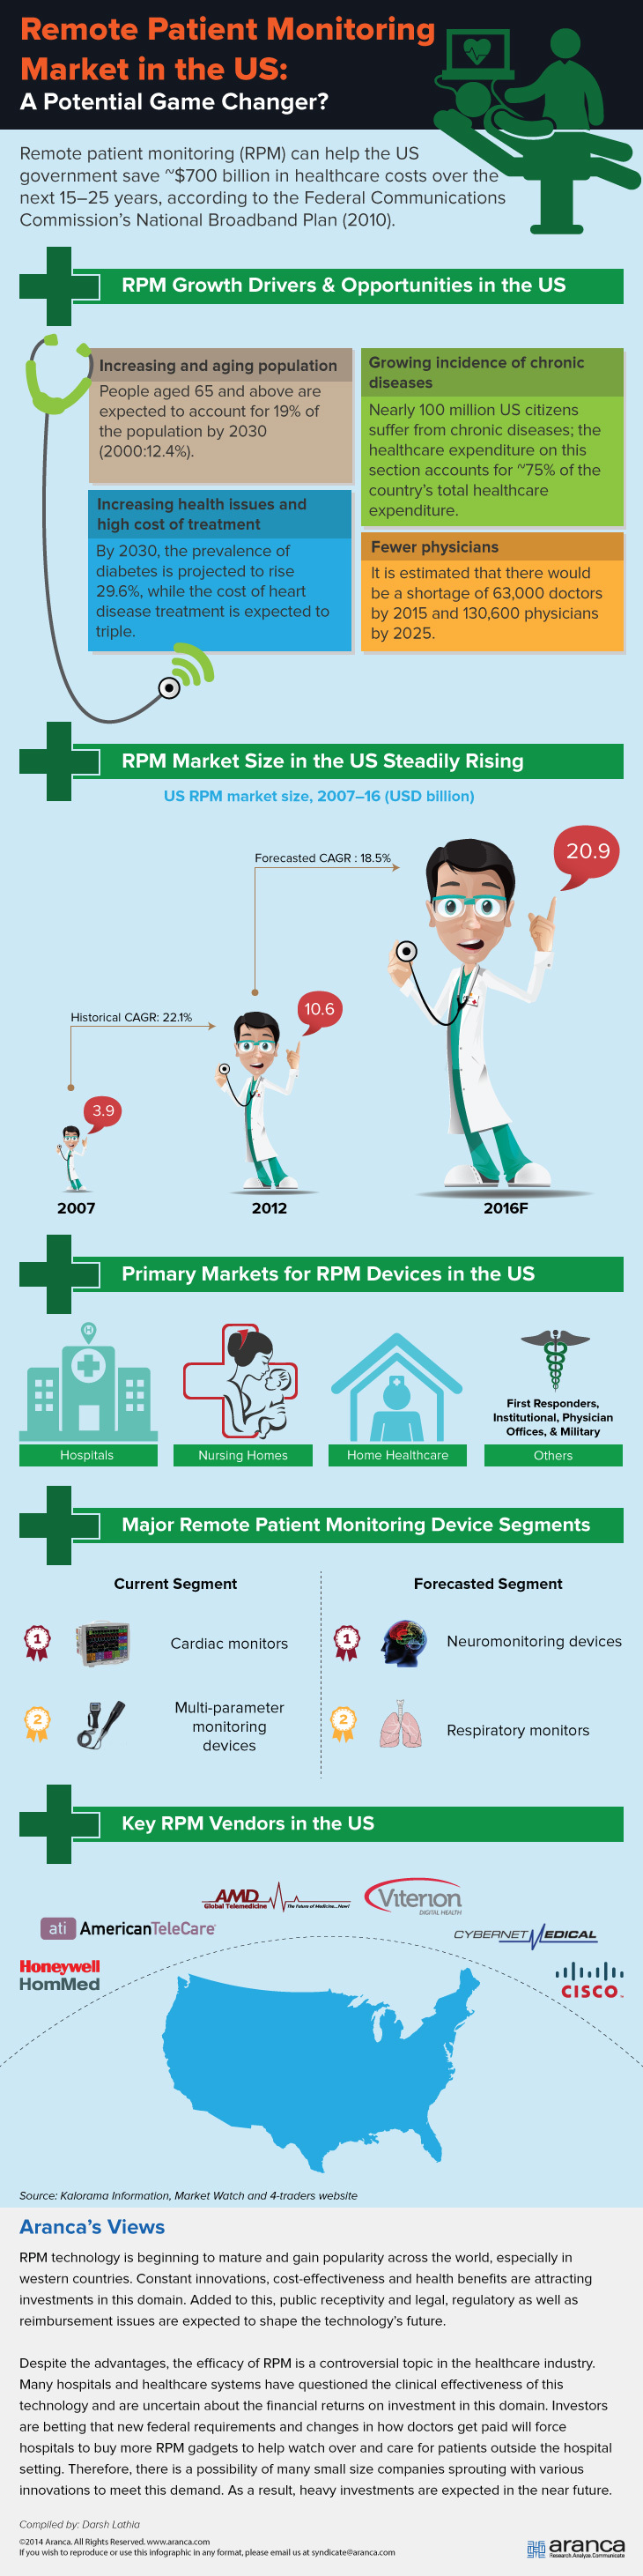 Remote Patient Monitoring Market US